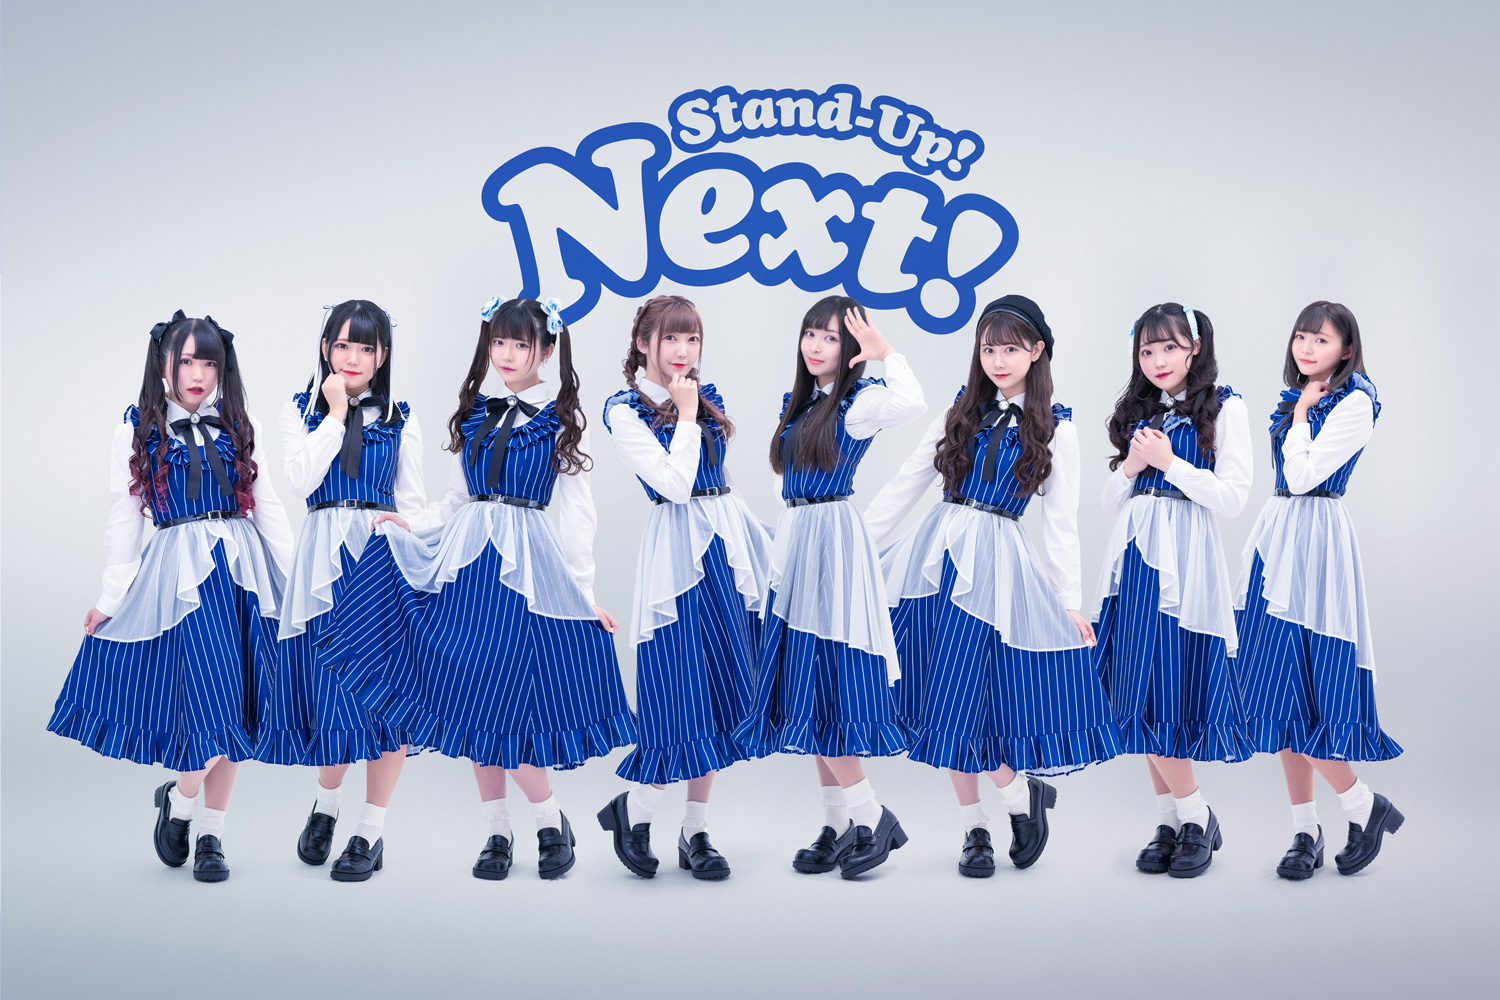 Stand-Up! Next!